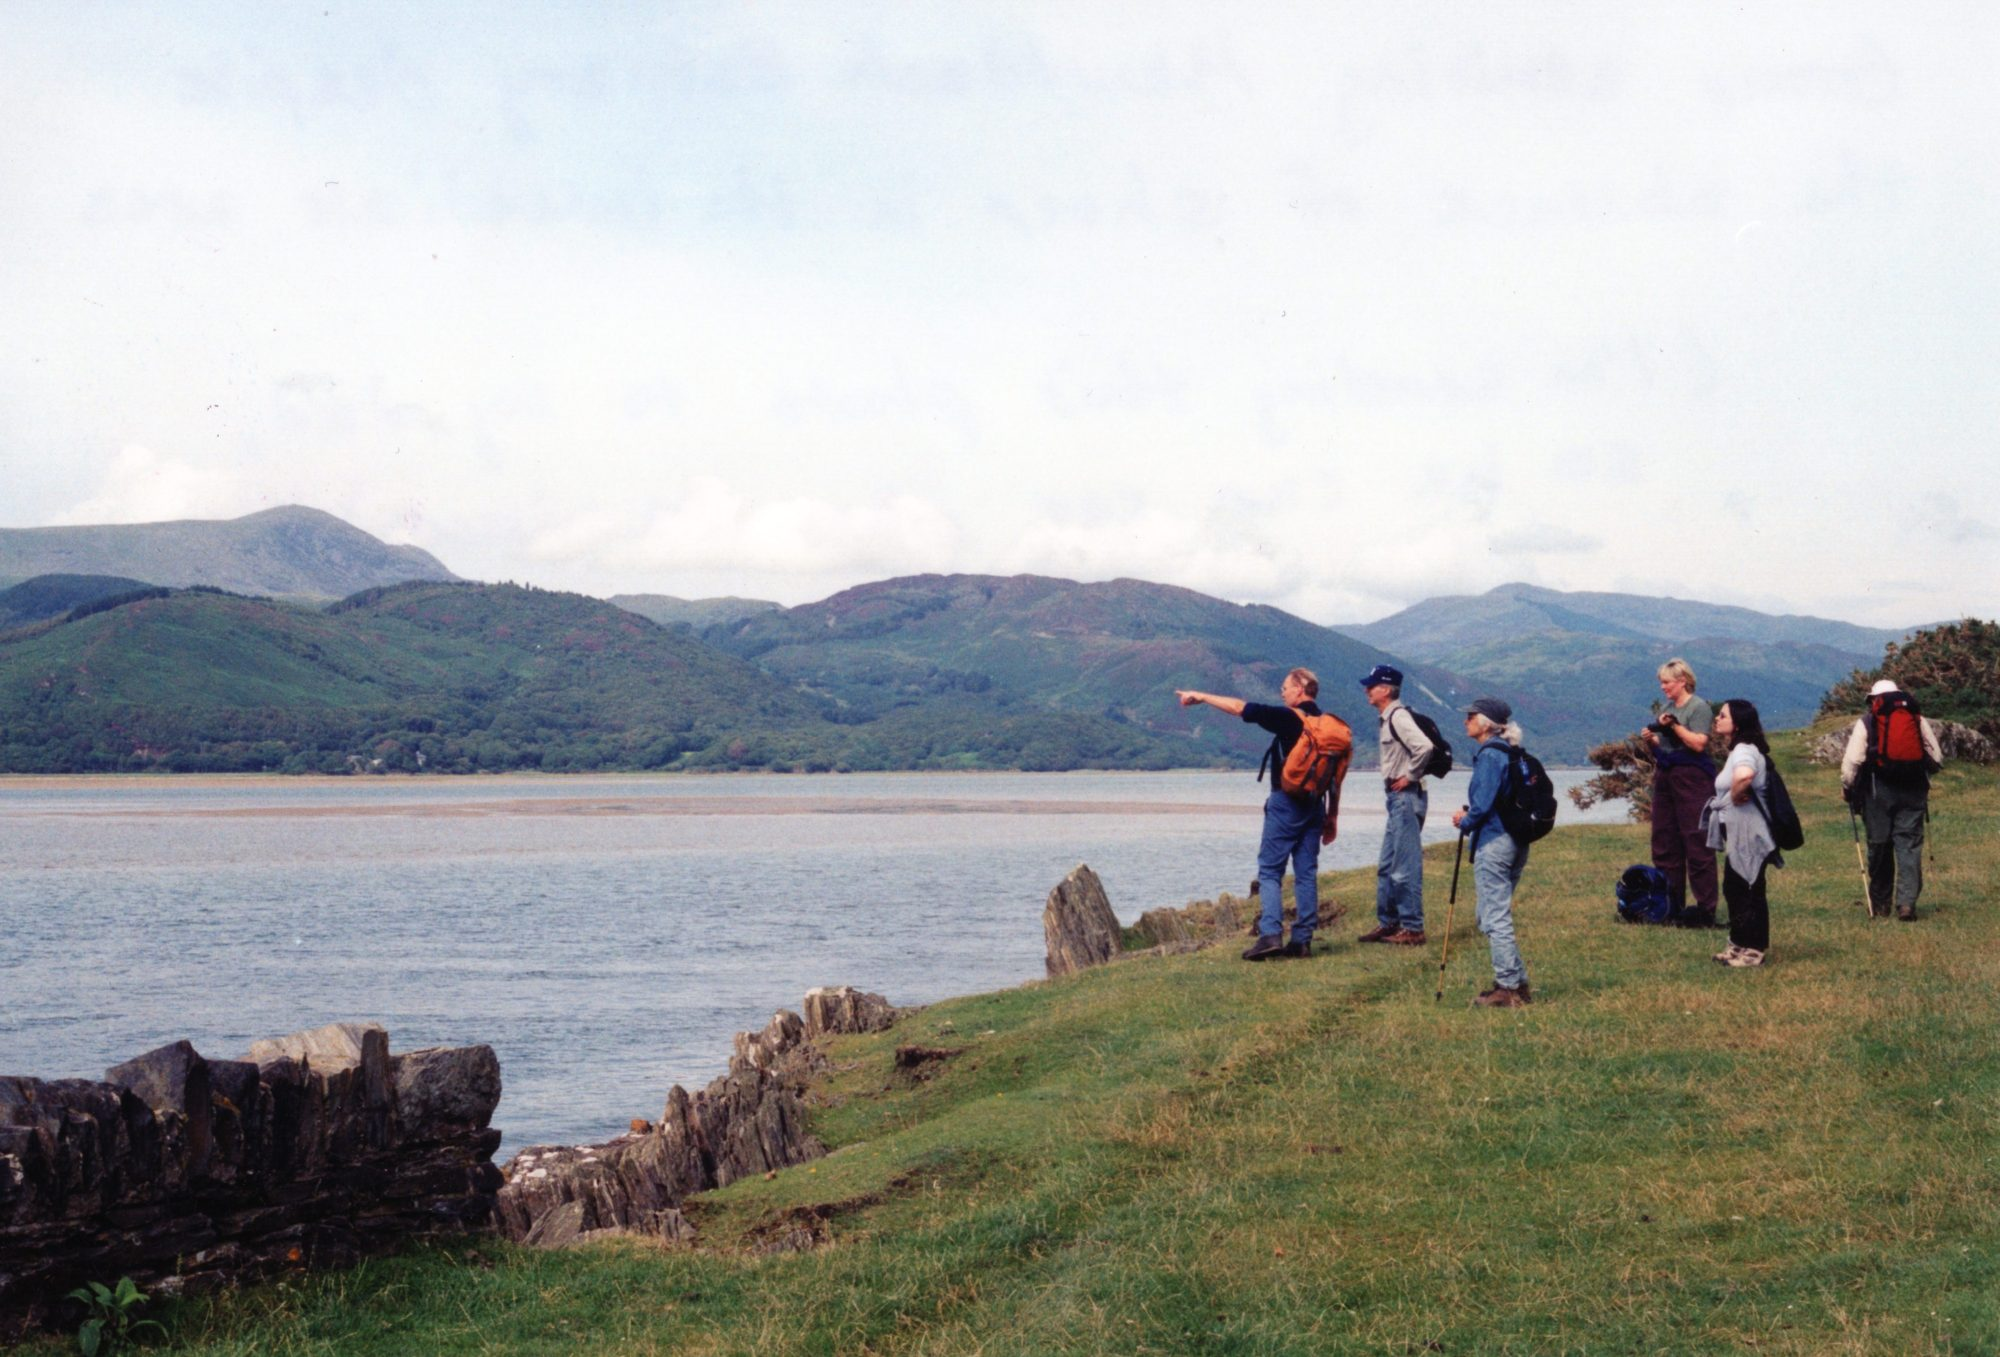 Walkers taking a moment out to discuss aspects of the scenery before them